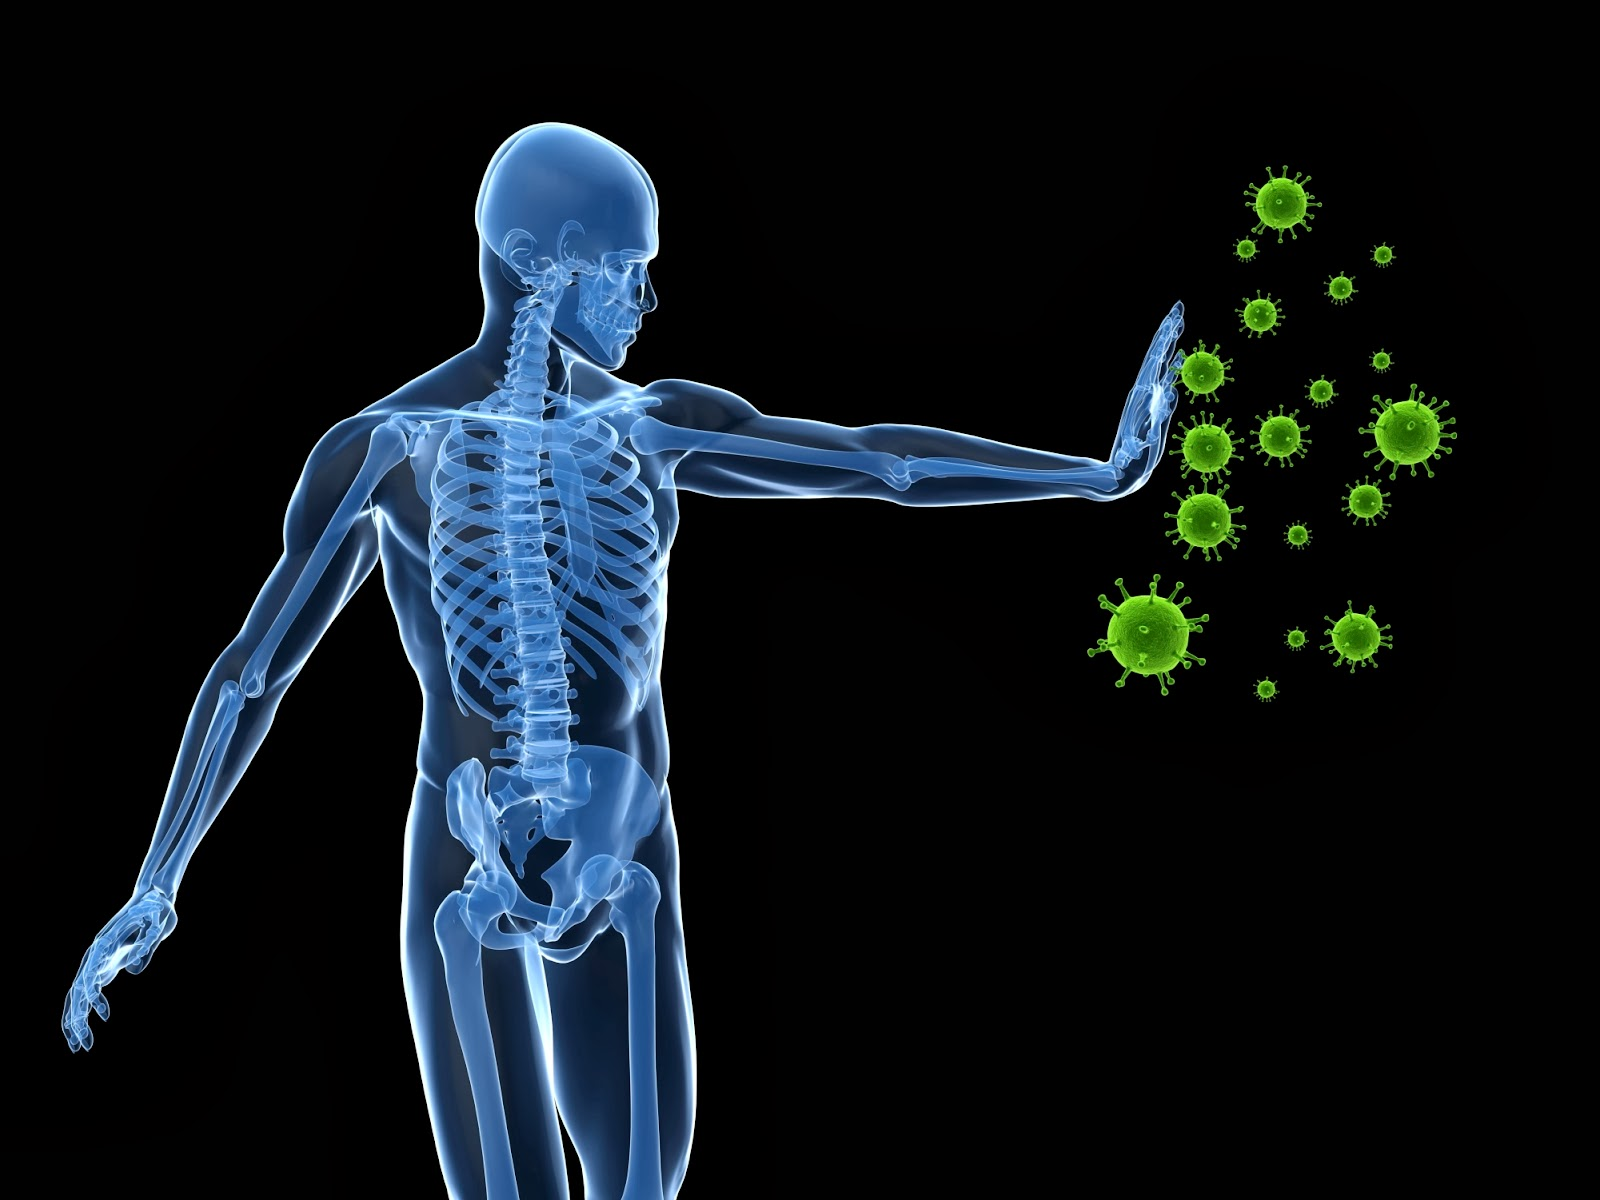 11 Surprising Facts About the Immune System